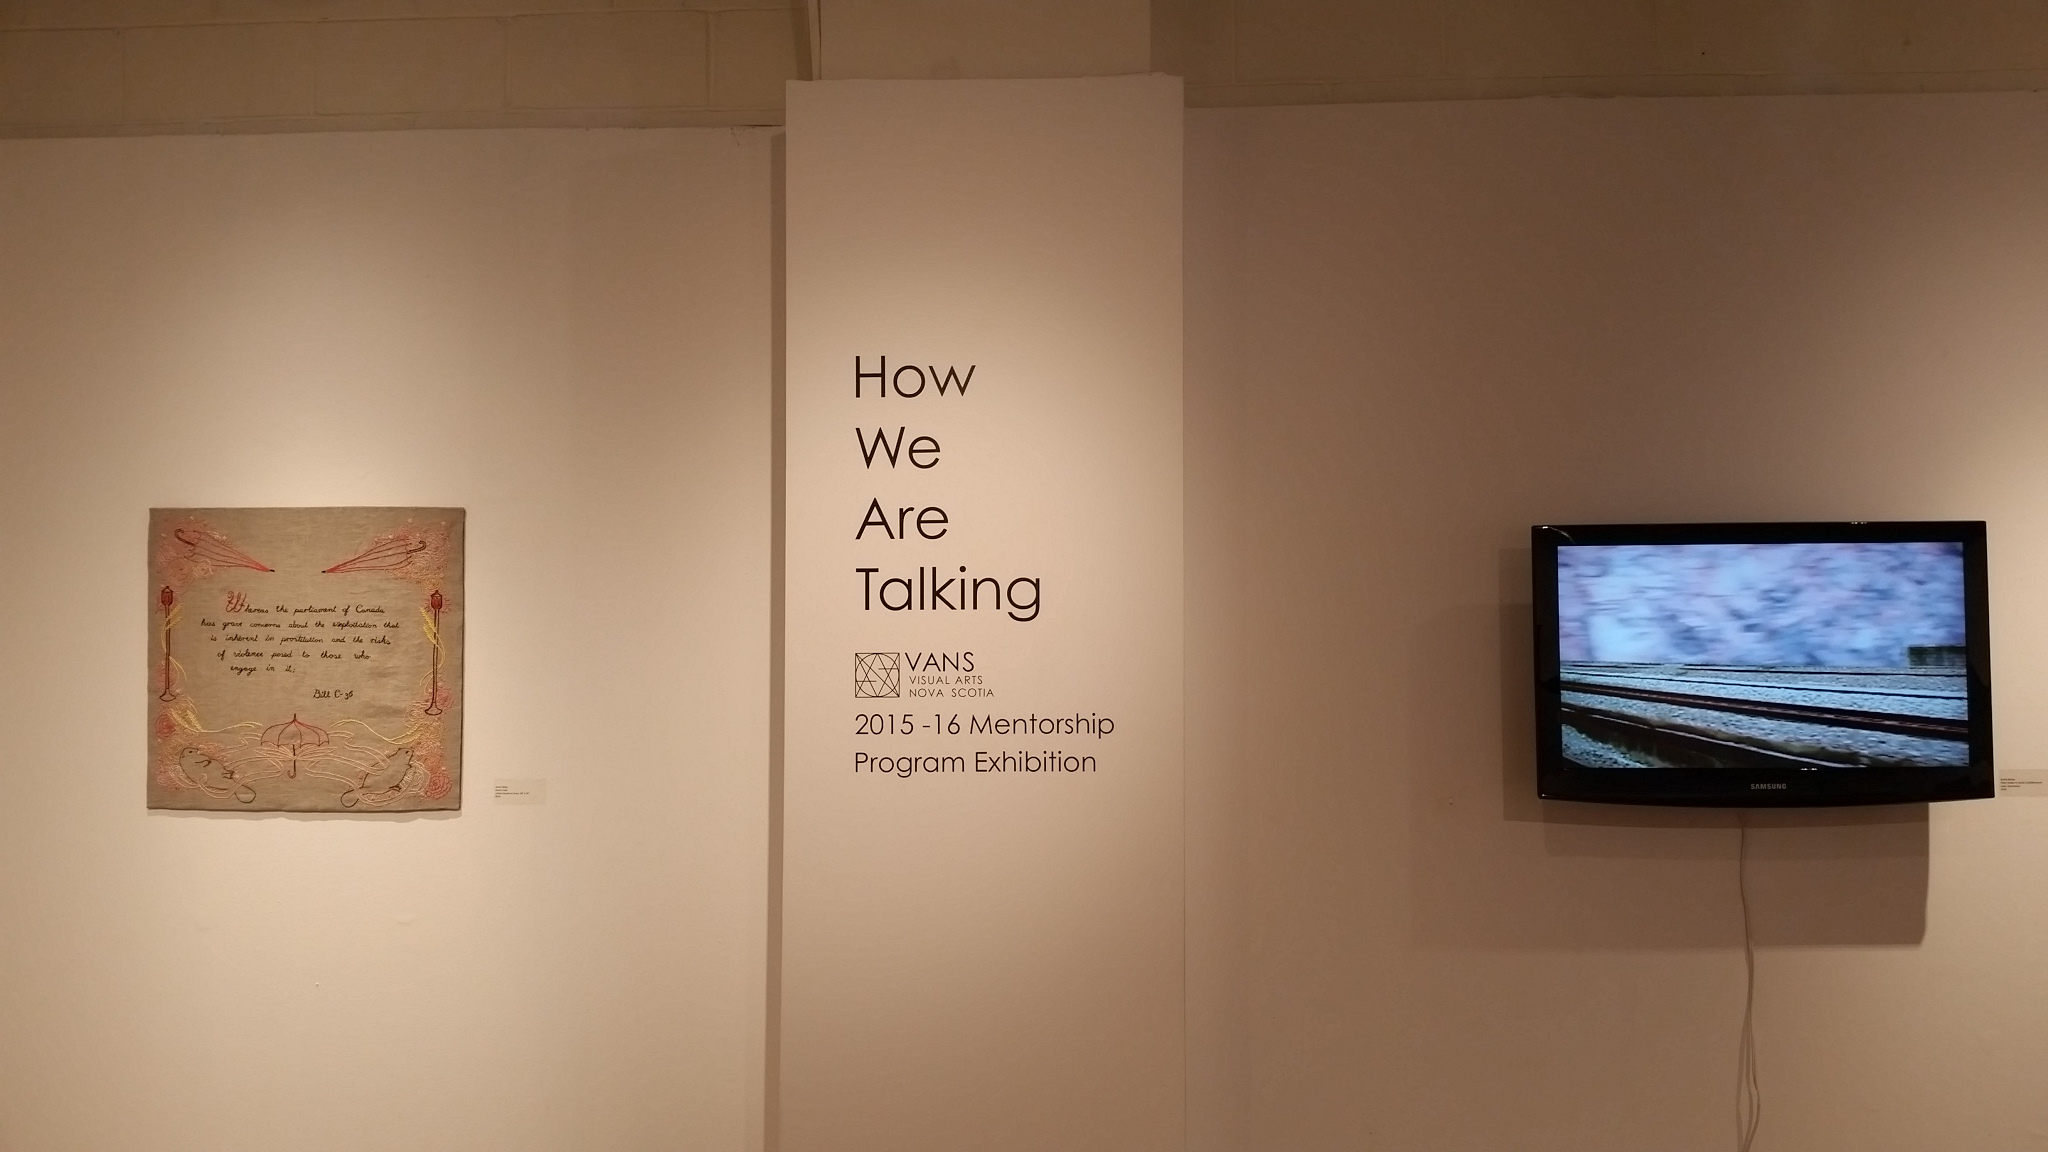 Left: Anna Taylor,  Moral Code  (cotton thread on linen, 26″ x 24″) and right, Becka Barker,  Place Holder II: 110/300 km/hr  (digital video, 1920x1080). Installation shot from How We Are Talking, VANS 2015-2016 Mentorship Program Exhibition.